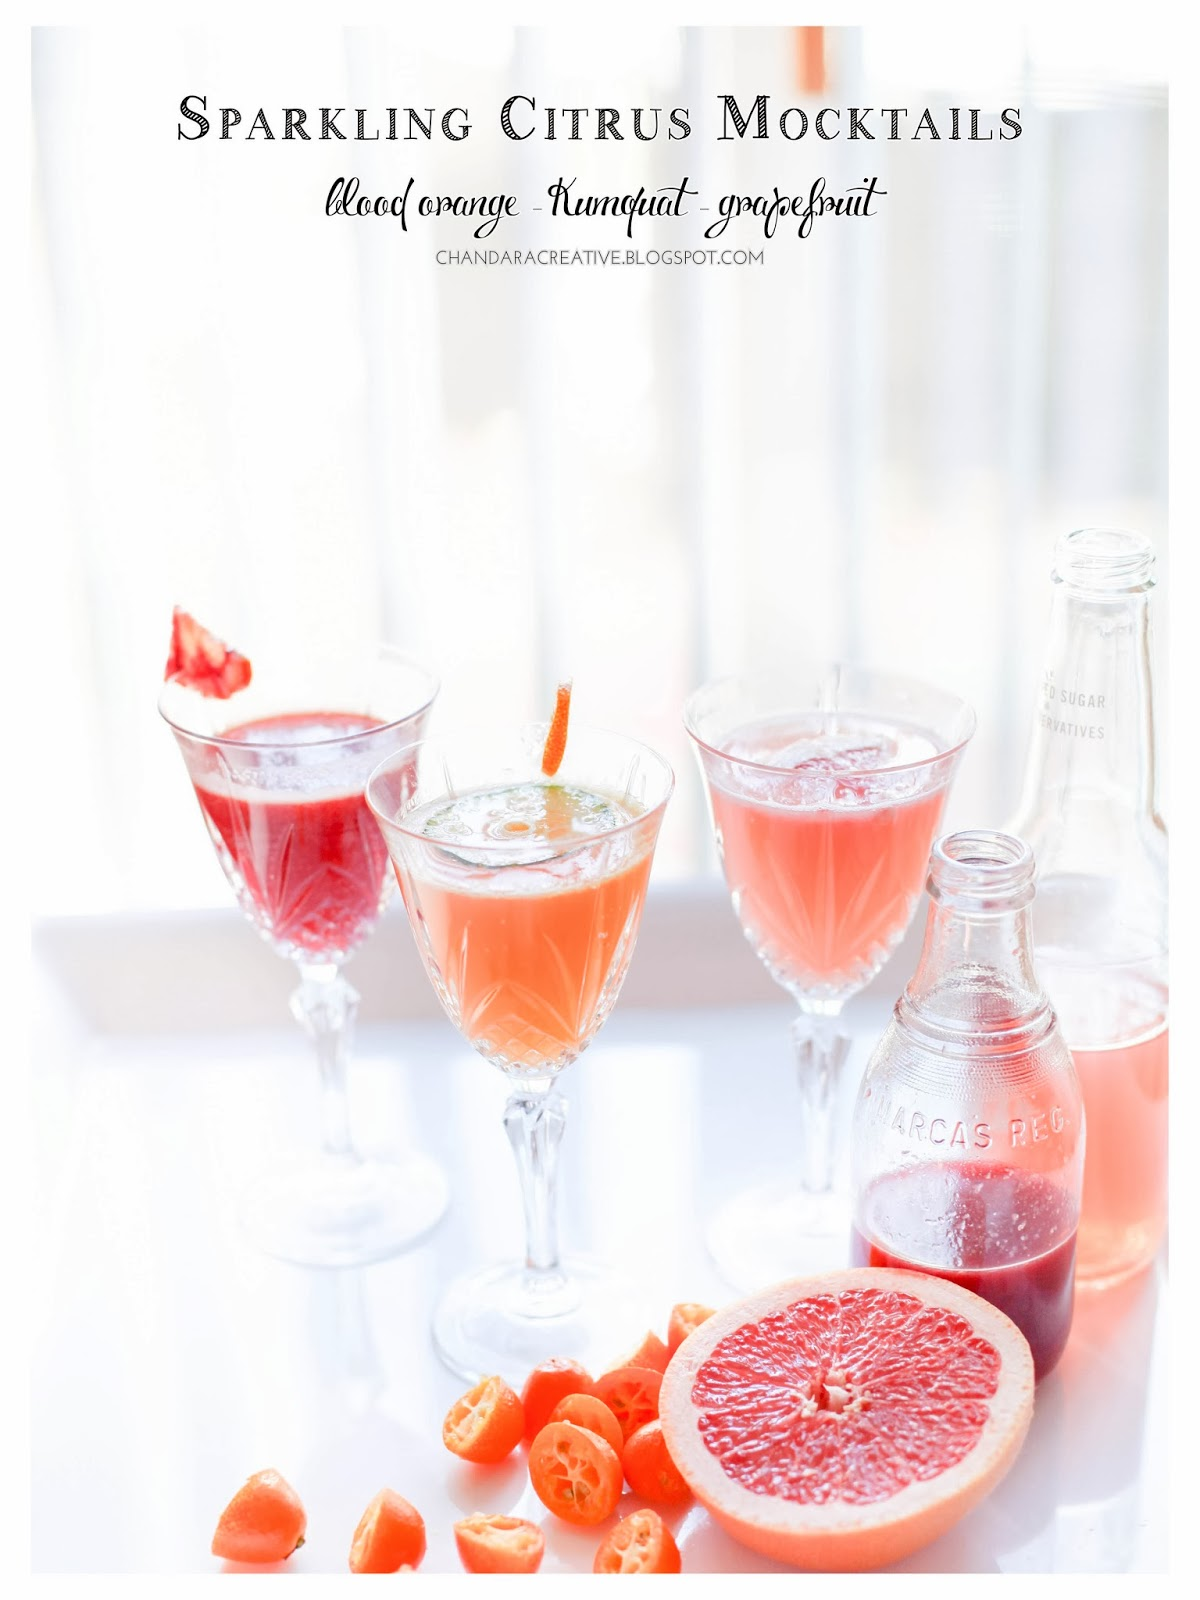 Sparkling Citrus Fizz Mocktails for Valentine's | via Chandara Creative